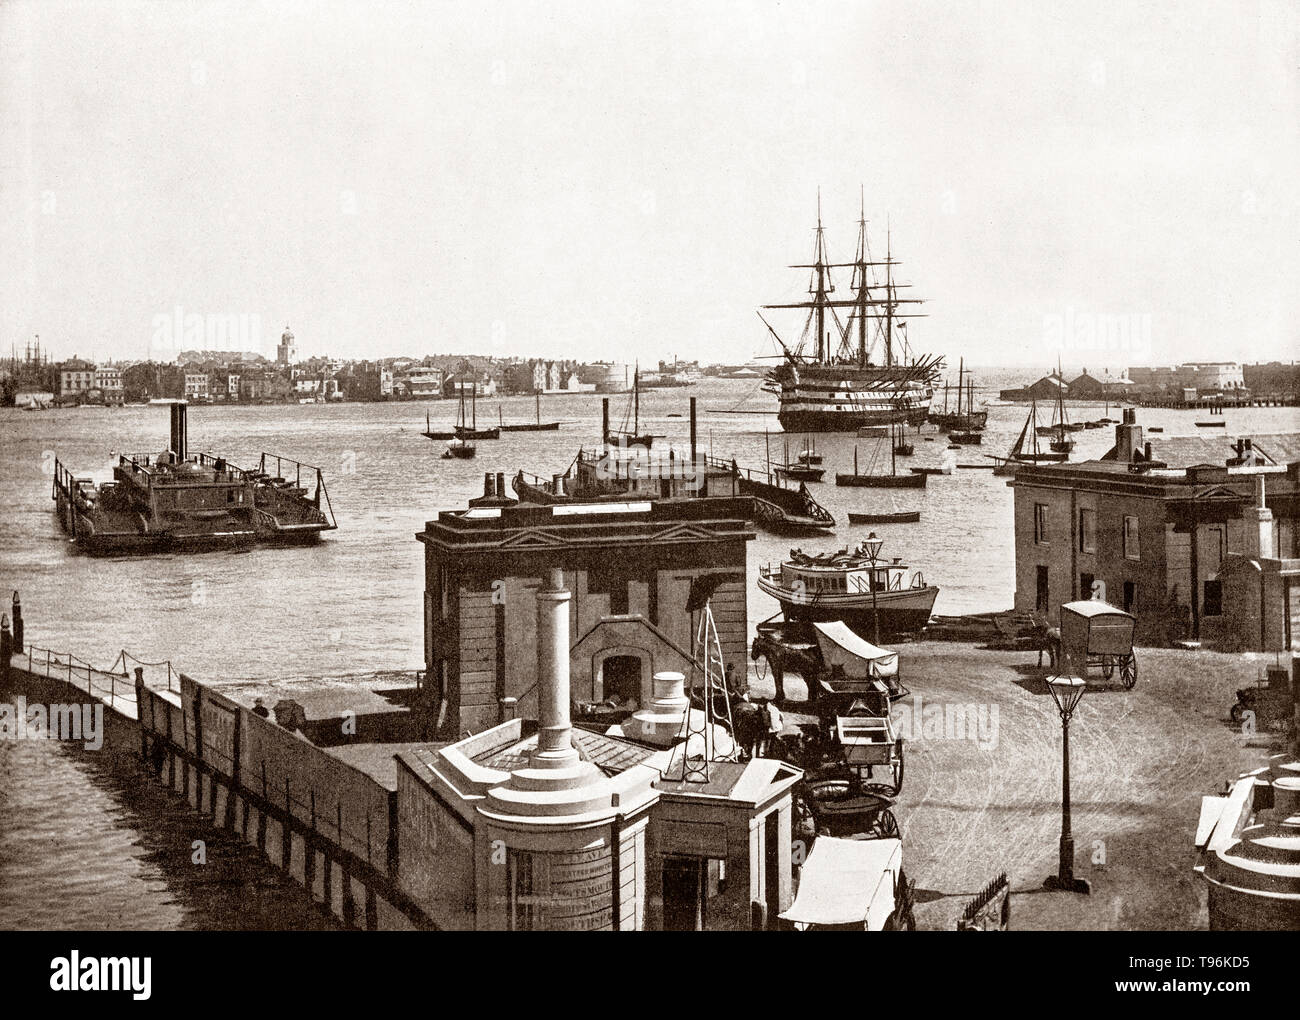 A late 19th Century view of an early small car ferry dwarfed by Admiral Nelson's flagship 'Victory' floating in the vast harbour in Portsmouth. a port city in Hampshire, England. During the 19th century,  the world's first mass production line was set up in Portsmouth Dockyard's Block Mills, making it the most industrialised site in the world and birthplace of the Industrial Revolution. Portsmouth was also the most heavily fortified town in the world, and was considered 'the world's greatest naval port' at the height of the British Empire throughout Pax Britannica. - Stock Image